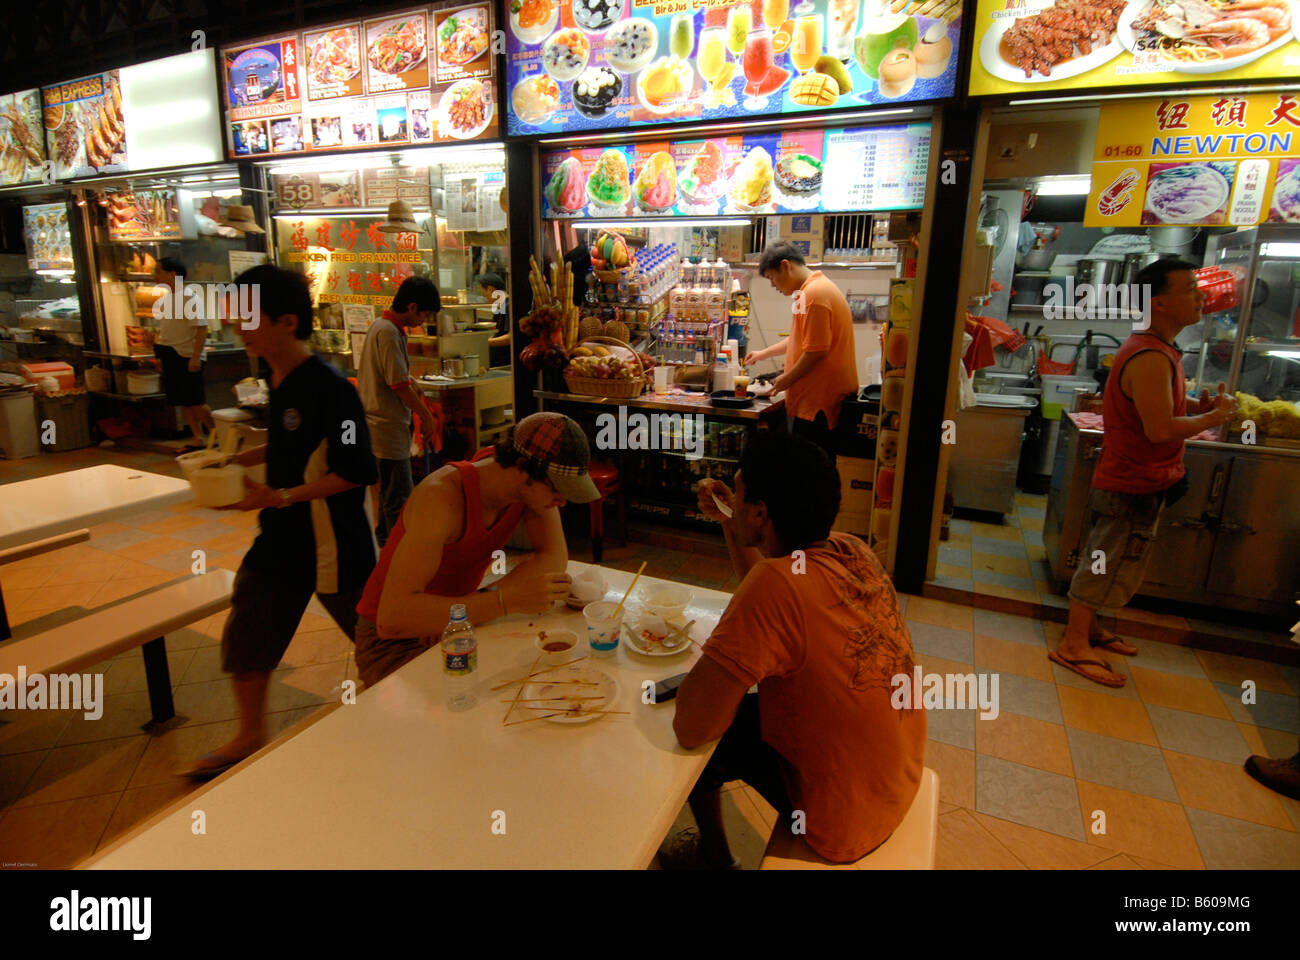 Two Men Have Dinner At Newton Circus Food Court In Singapore Deux